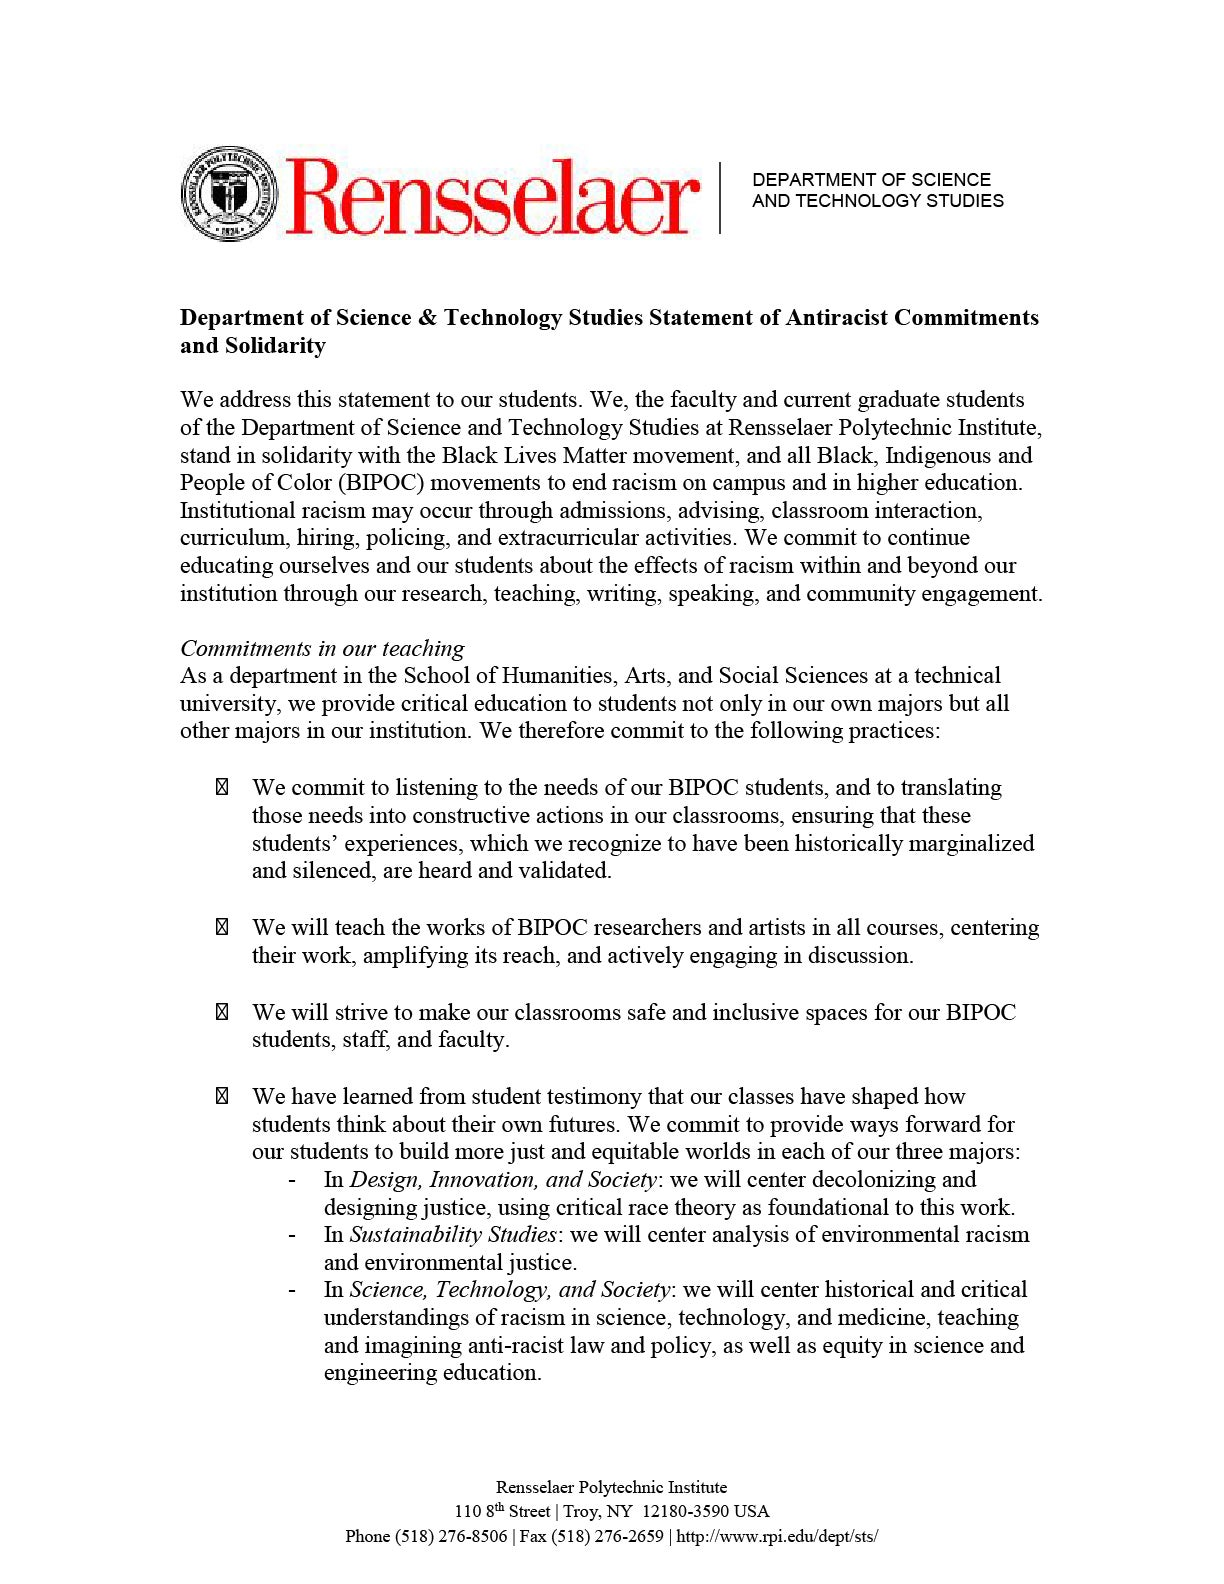 A statement of antiracist commitment and solidarity from STS.